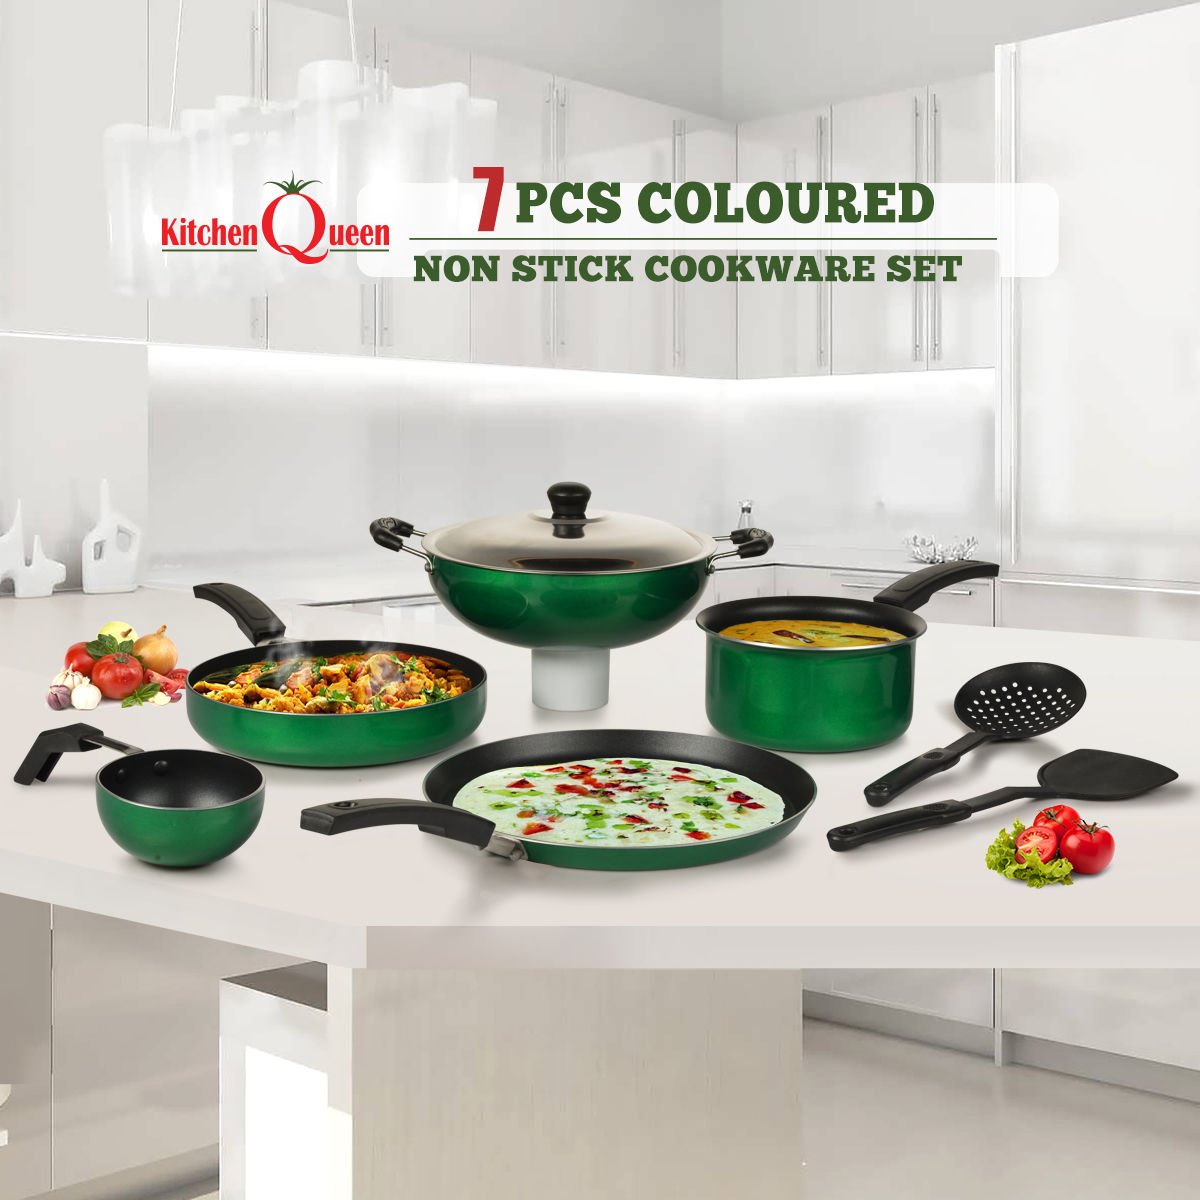 Buy 7 Pcs Colored Non Stick Cookware Set Online At Best Price In